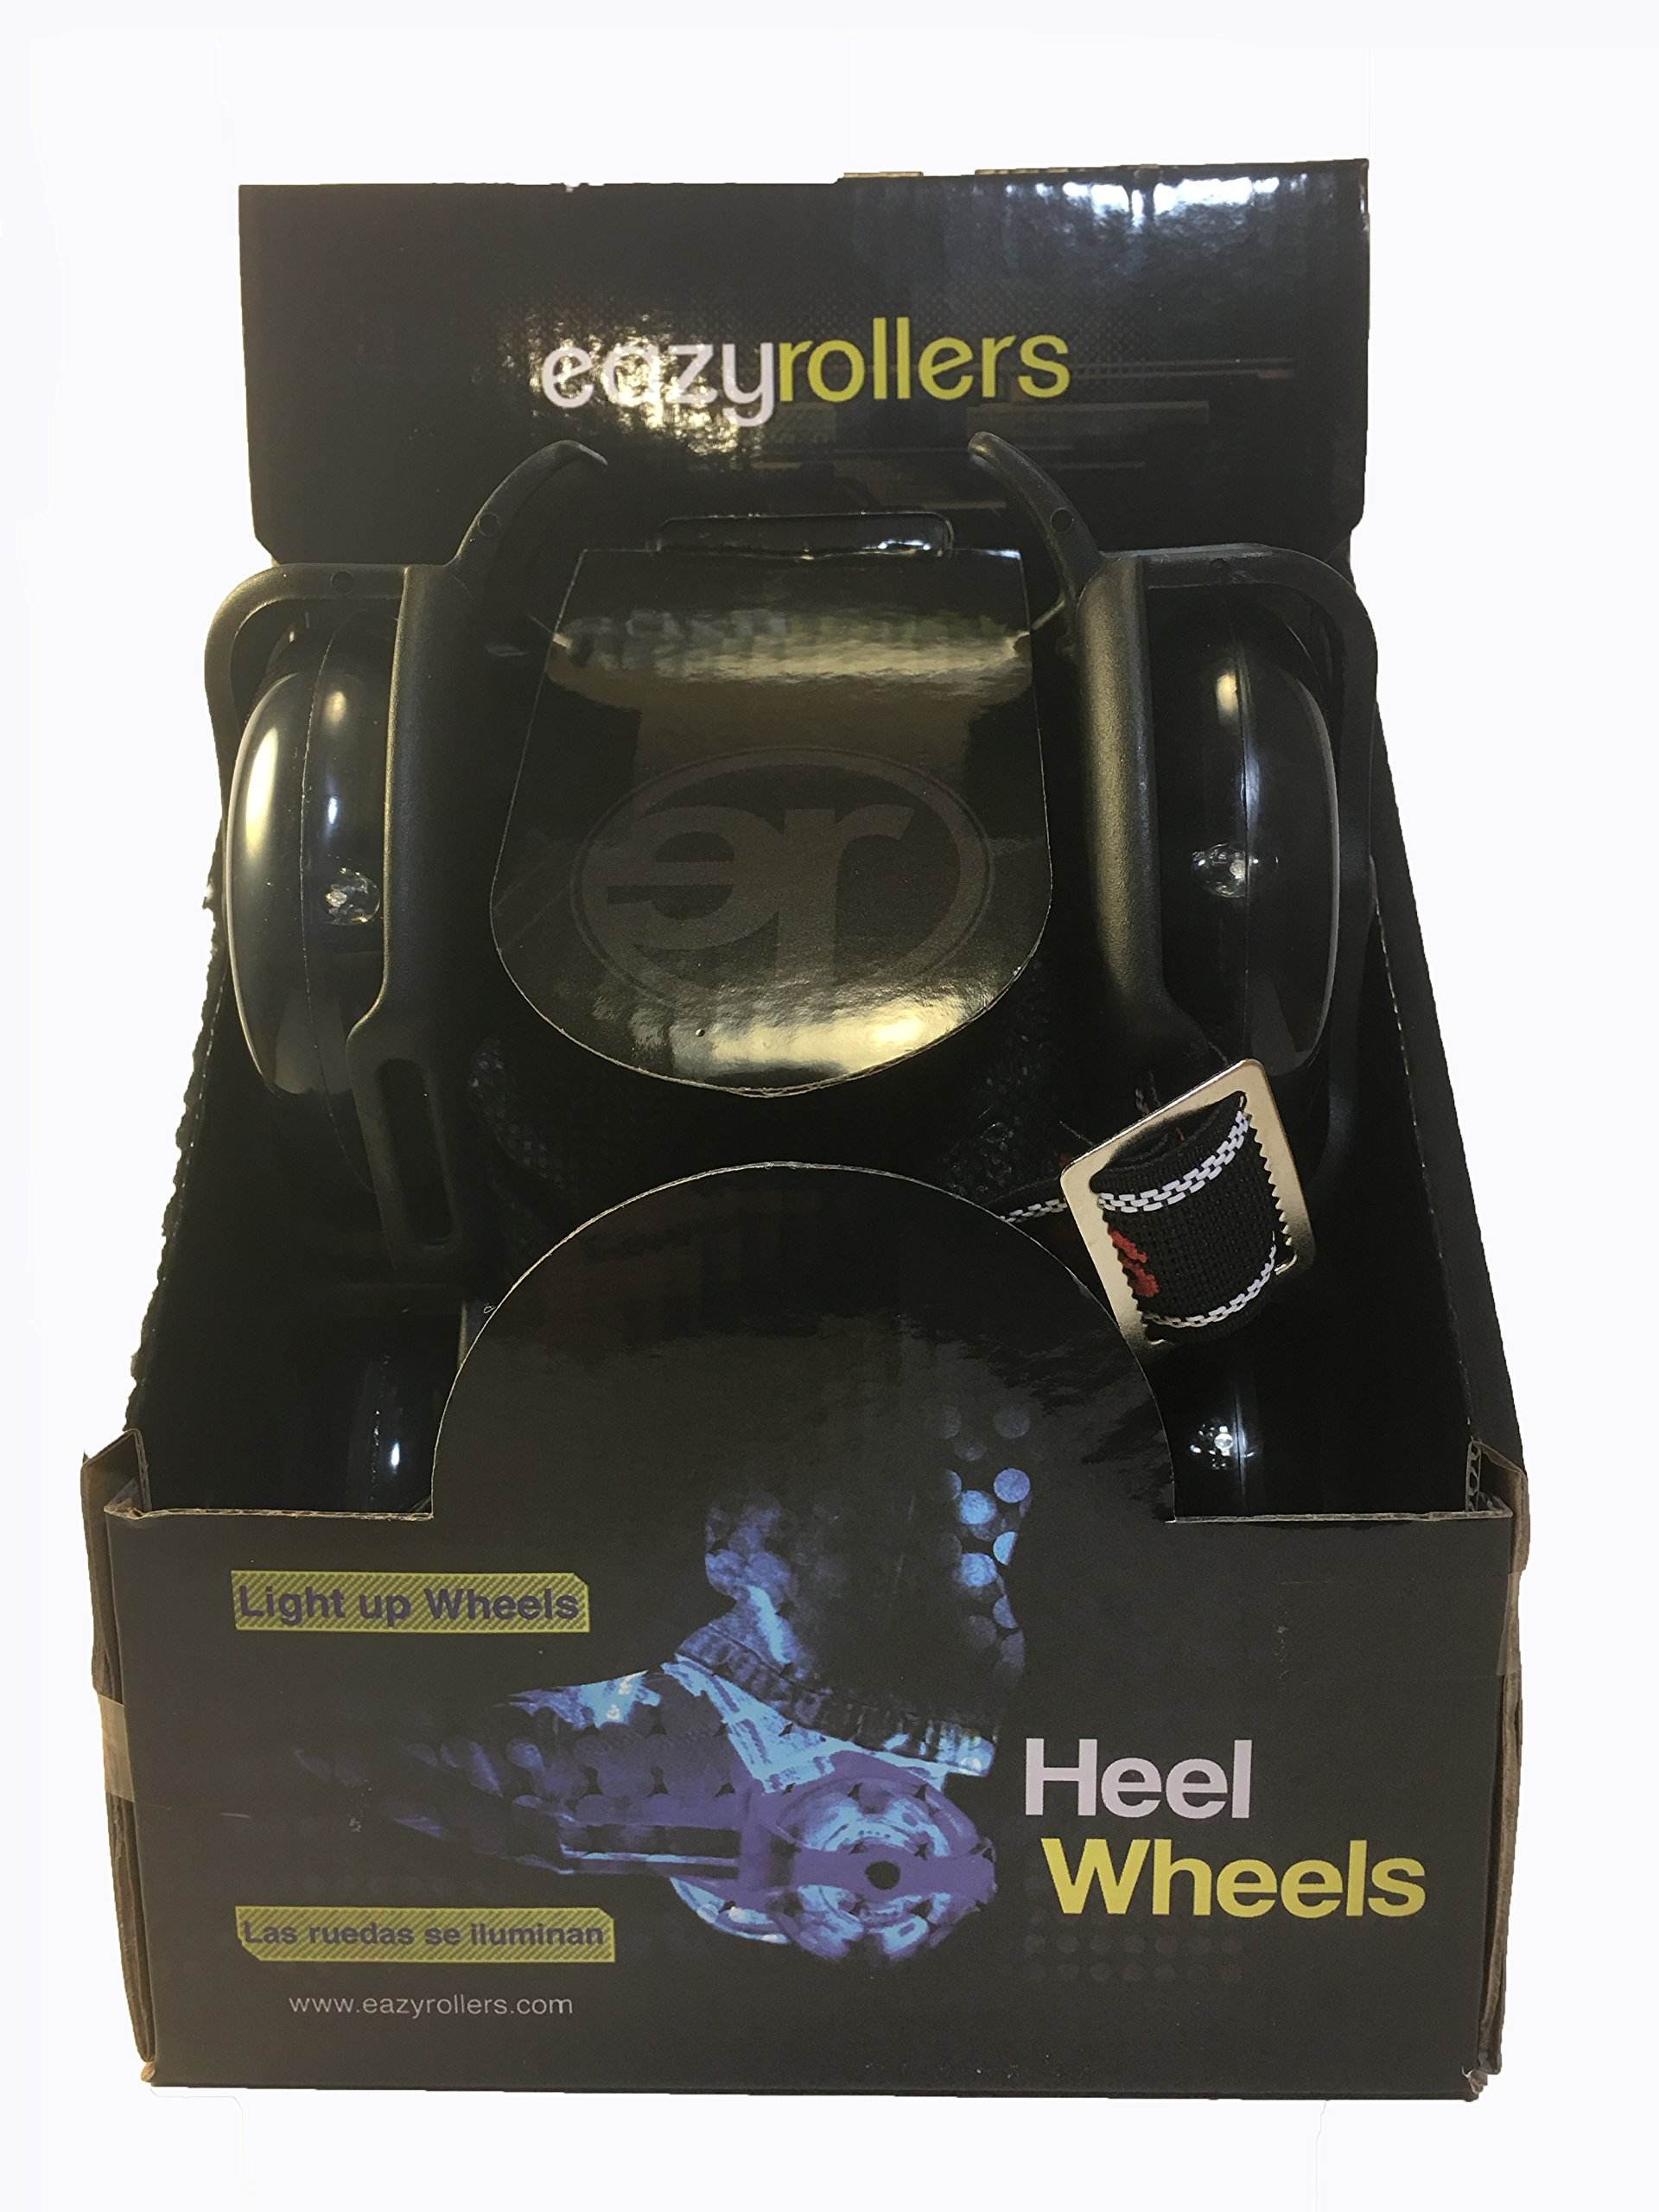 Eazy Rollers Pro Heel wheels Skates for Kids and Adults - Light up Wheels that Require no Battery